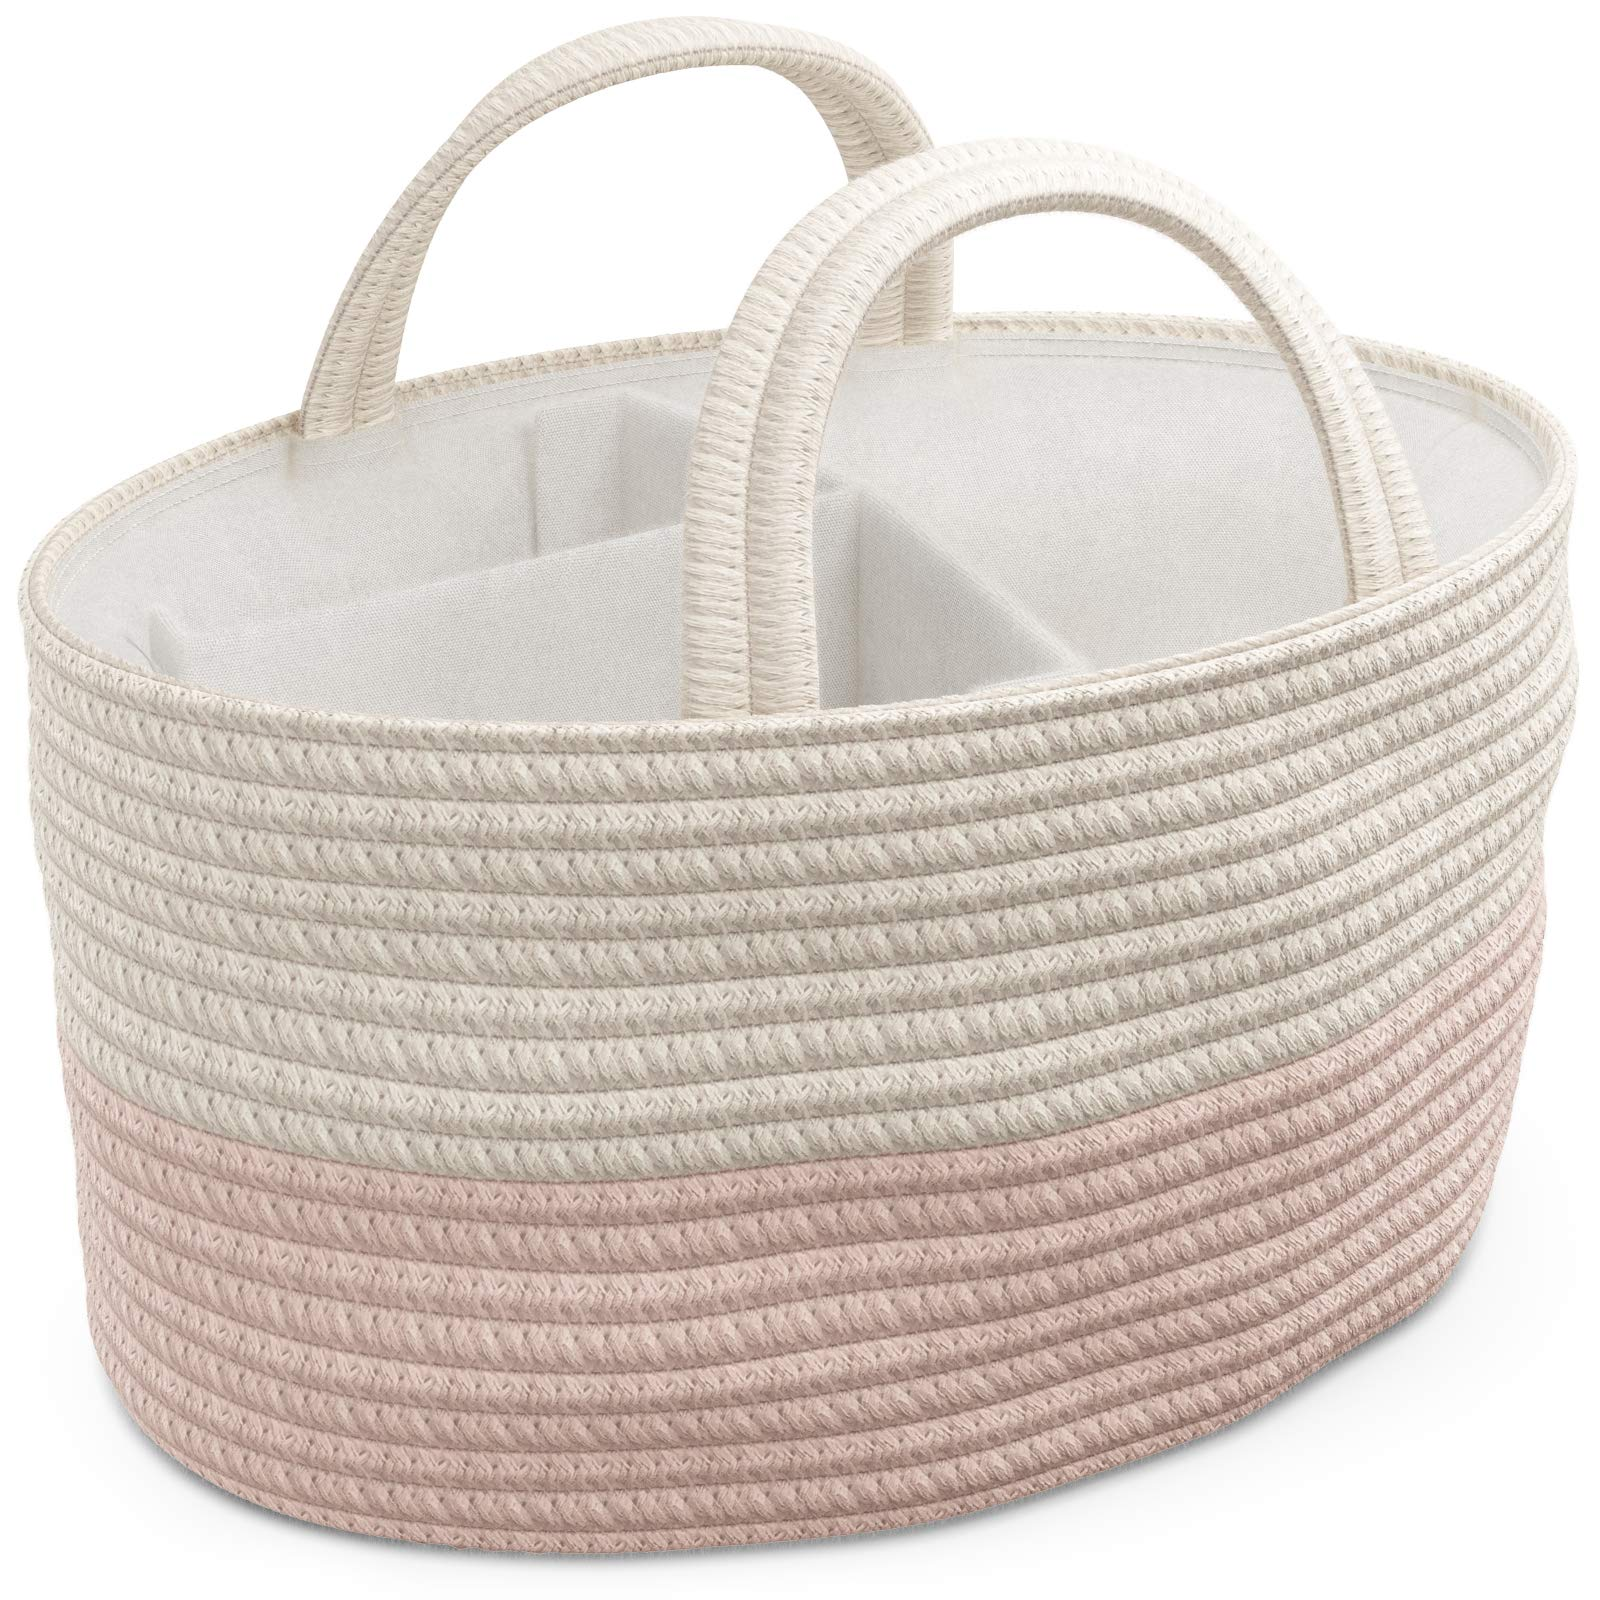 Diaper Caddy Organizer for Change Table   Portable Carry Tote for Newborn Girl Nursery with Handles   Storage Basket for Wipes, Diaper, Baby Essentials   Perfect Shower Gift   Cotton Rope - Pink/White